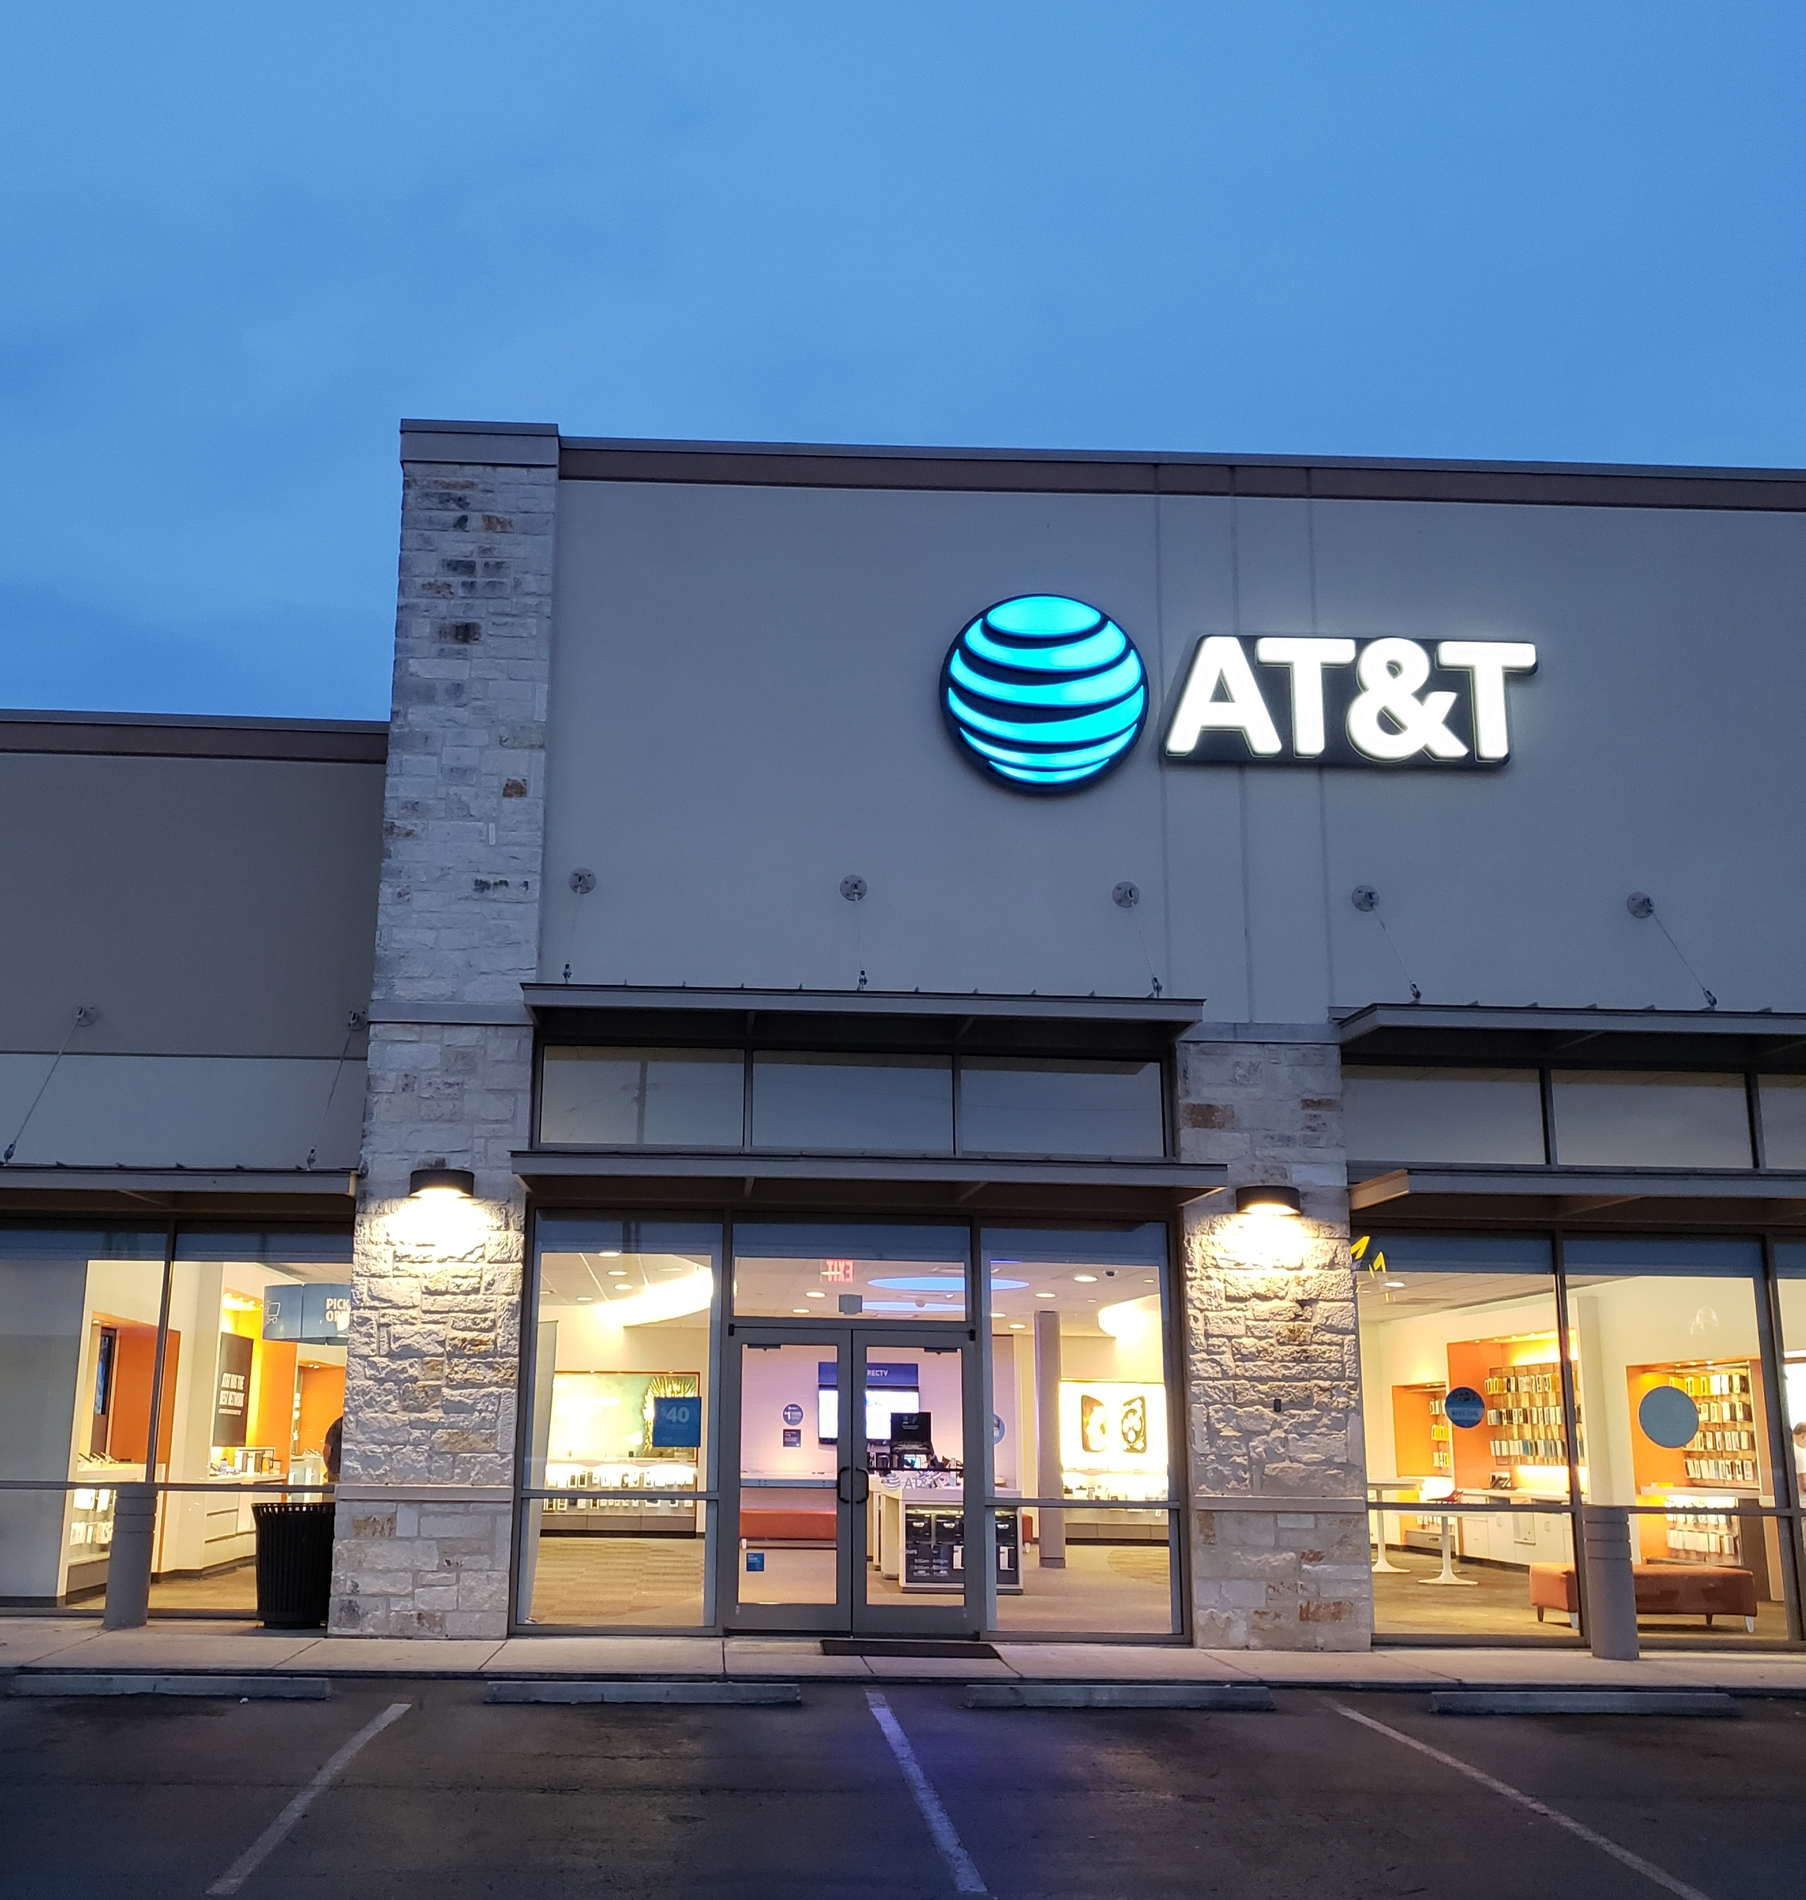 Creekside At New Braunfels Store Apple Iphone 12 And Samsung Devices New Braunfels Tx At T